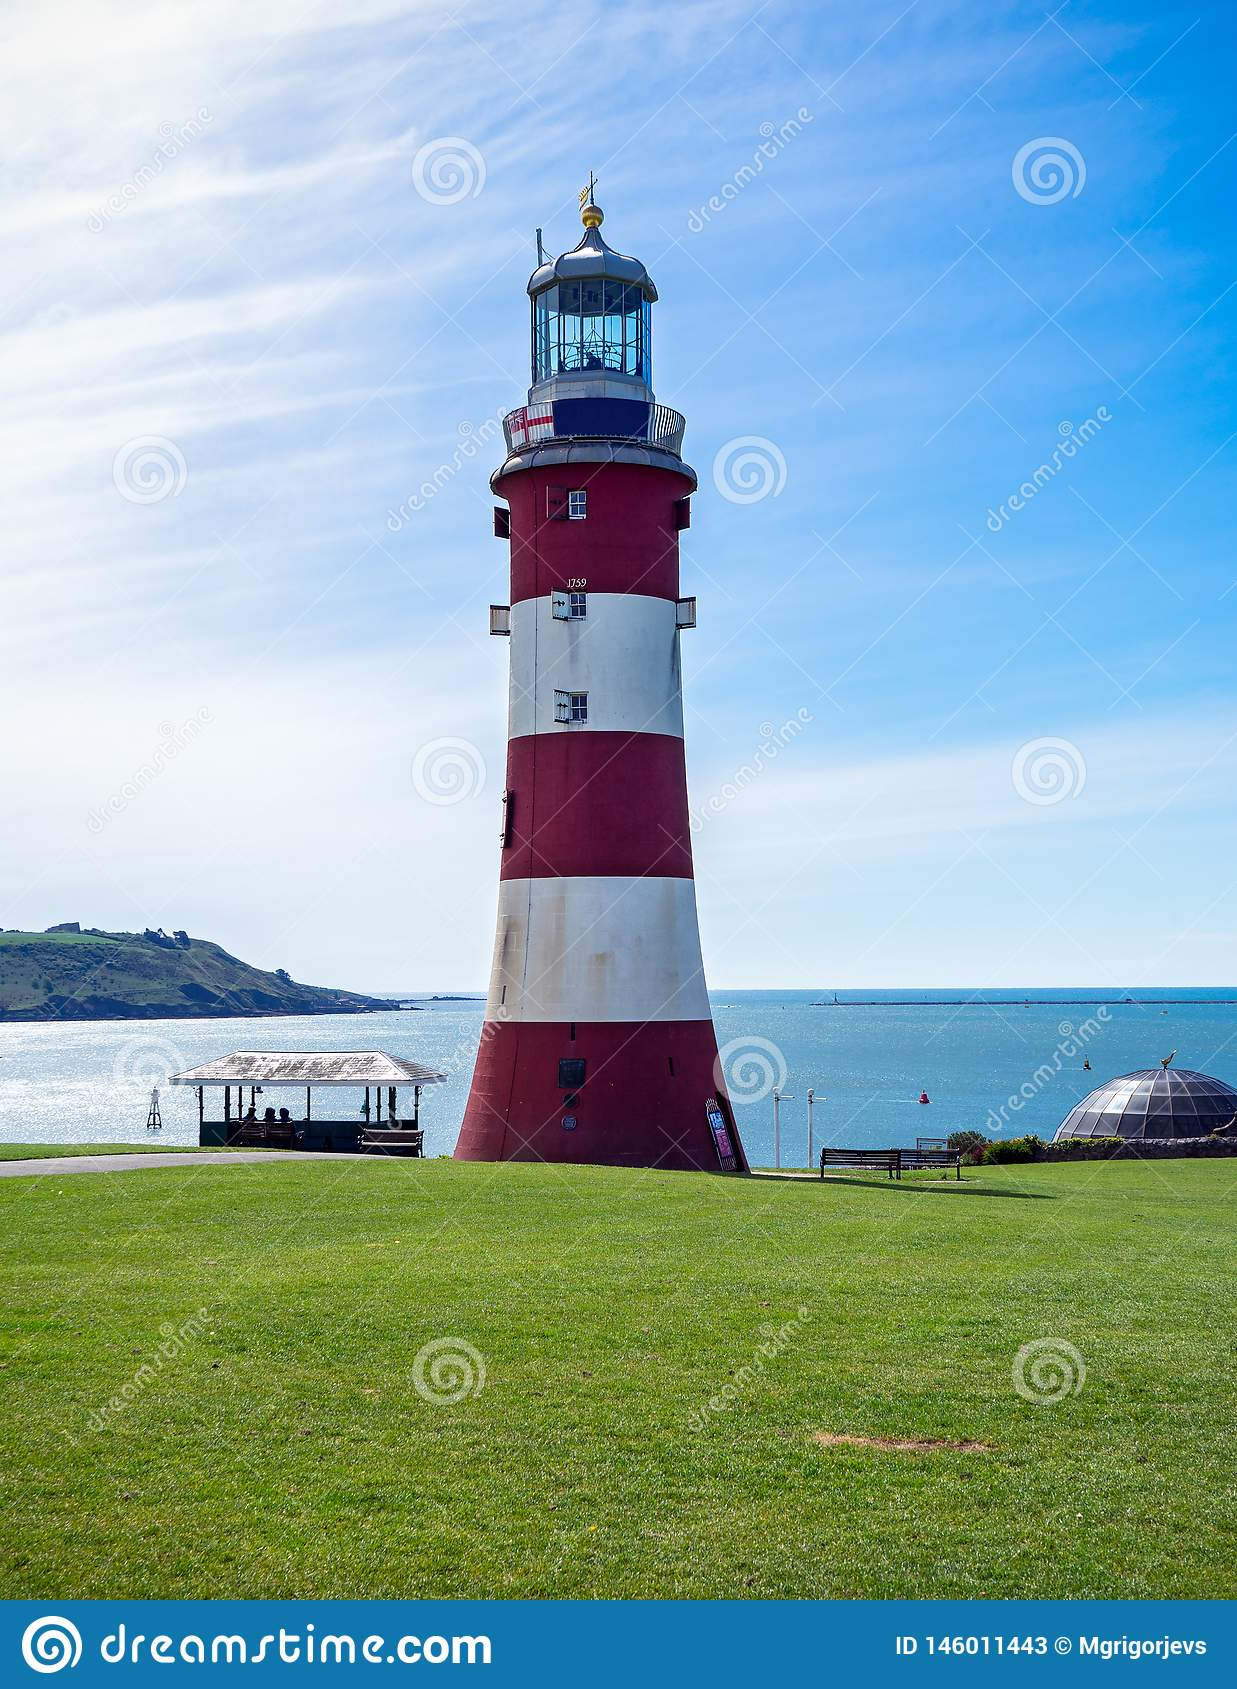 Smeaton`s Tower, Red and white lighthouse in Plymouth, Great Britain, May 3, 2018